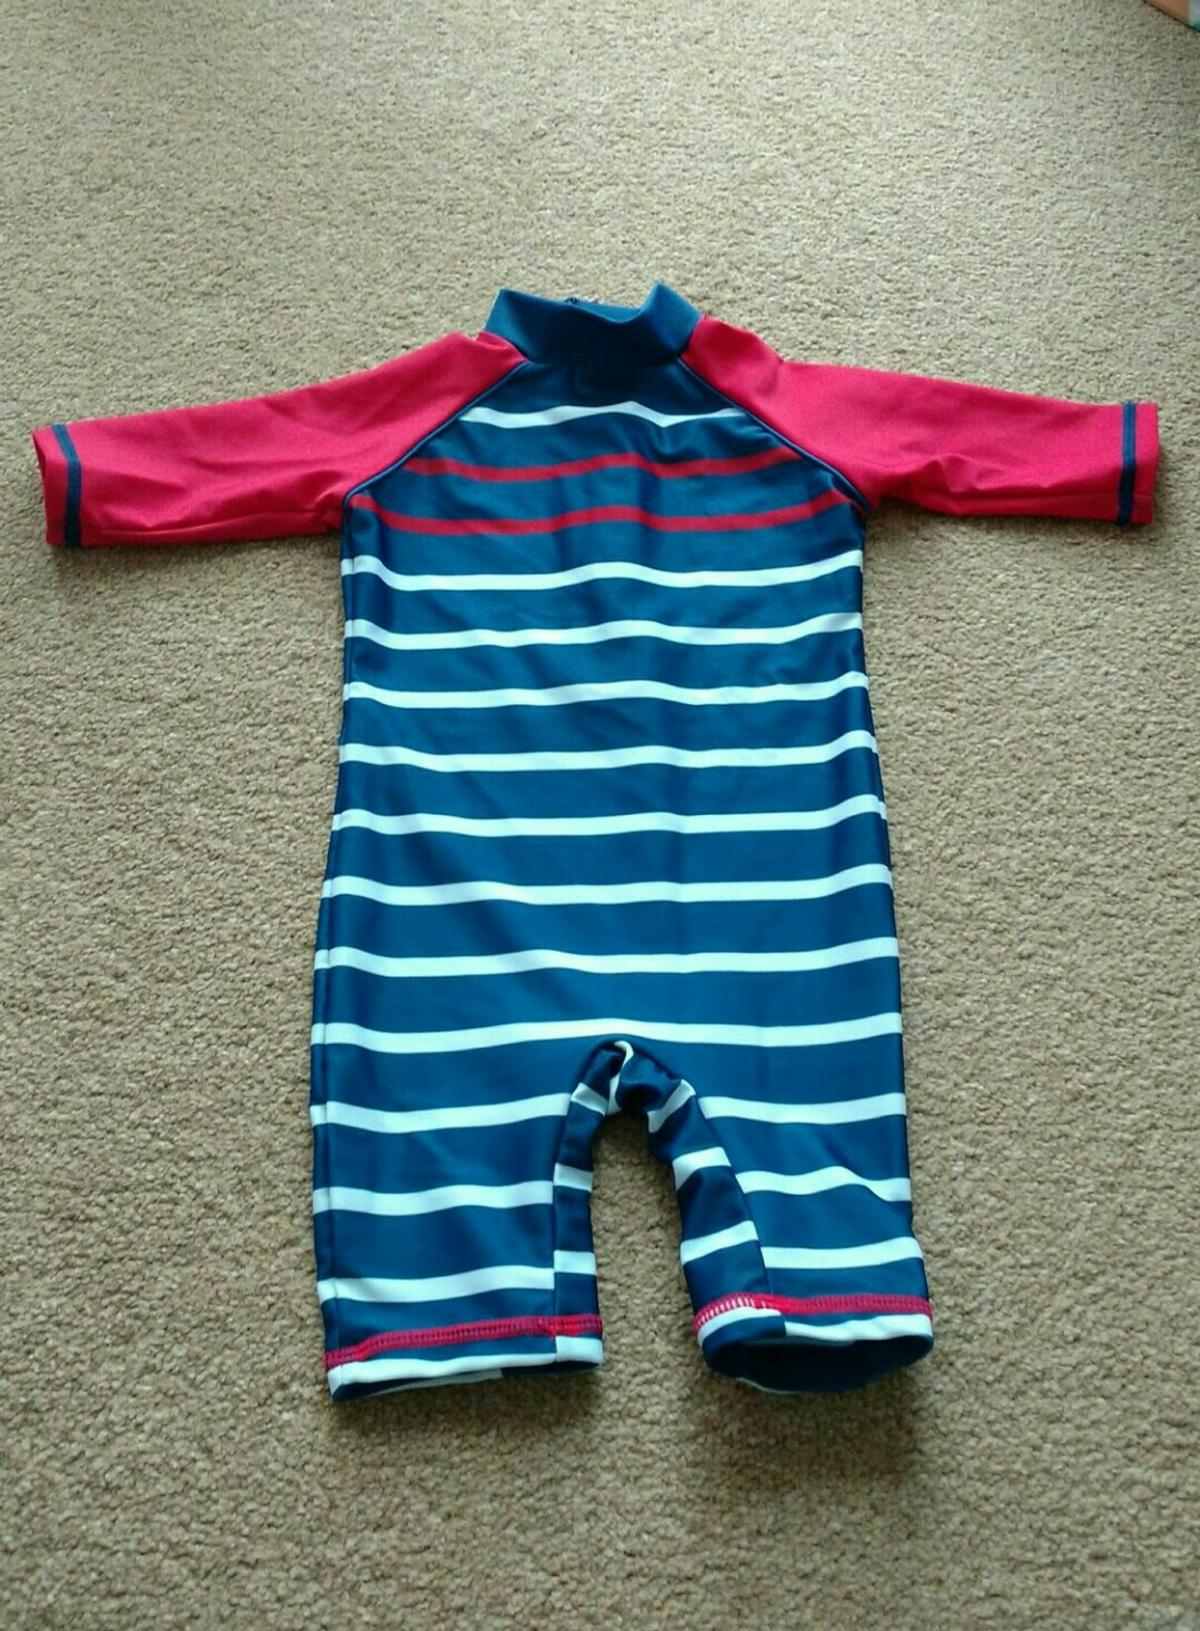 eb6eff2896 Baby Boys Swimsuit 9-12 Months in WV2 Wolverhampton for £1.50 for ...